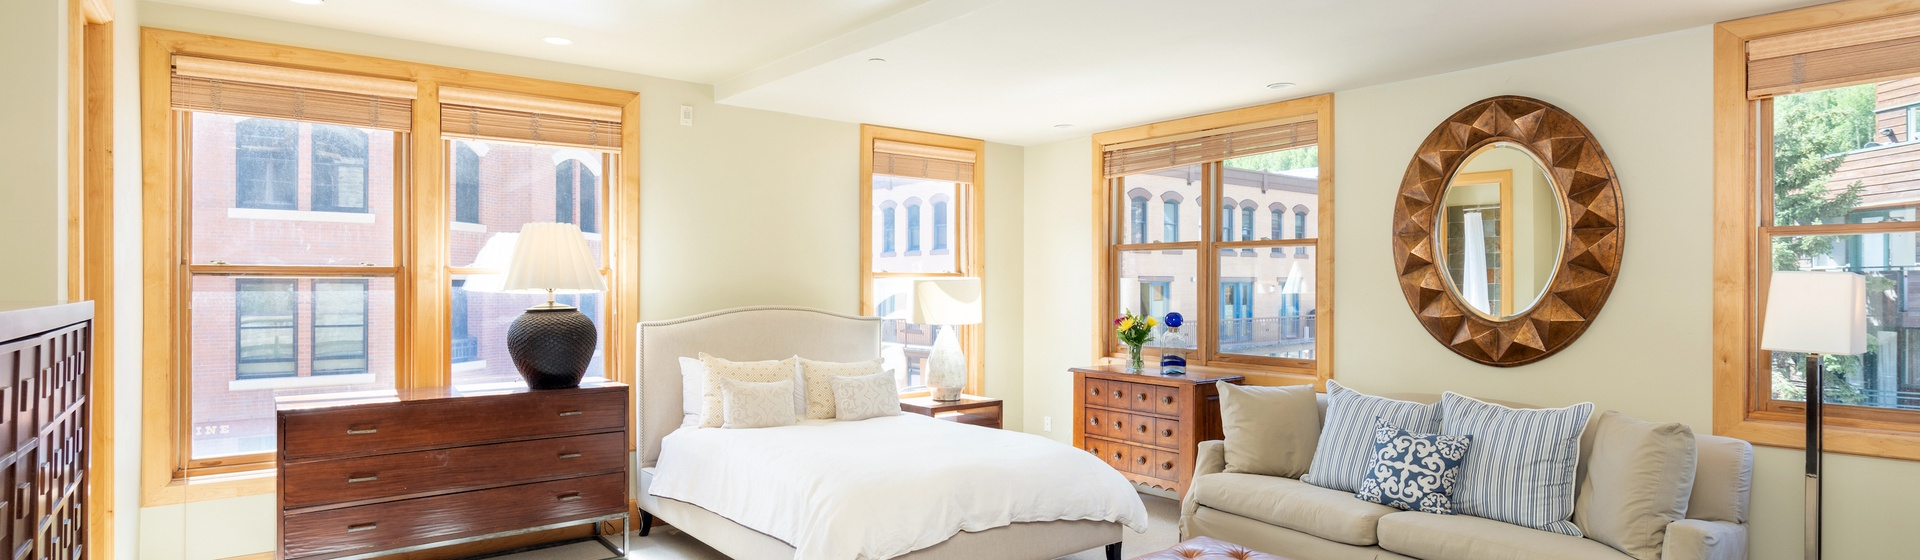 7-Telluride-Pine-Street-Penthouse-A-Primary-Suite